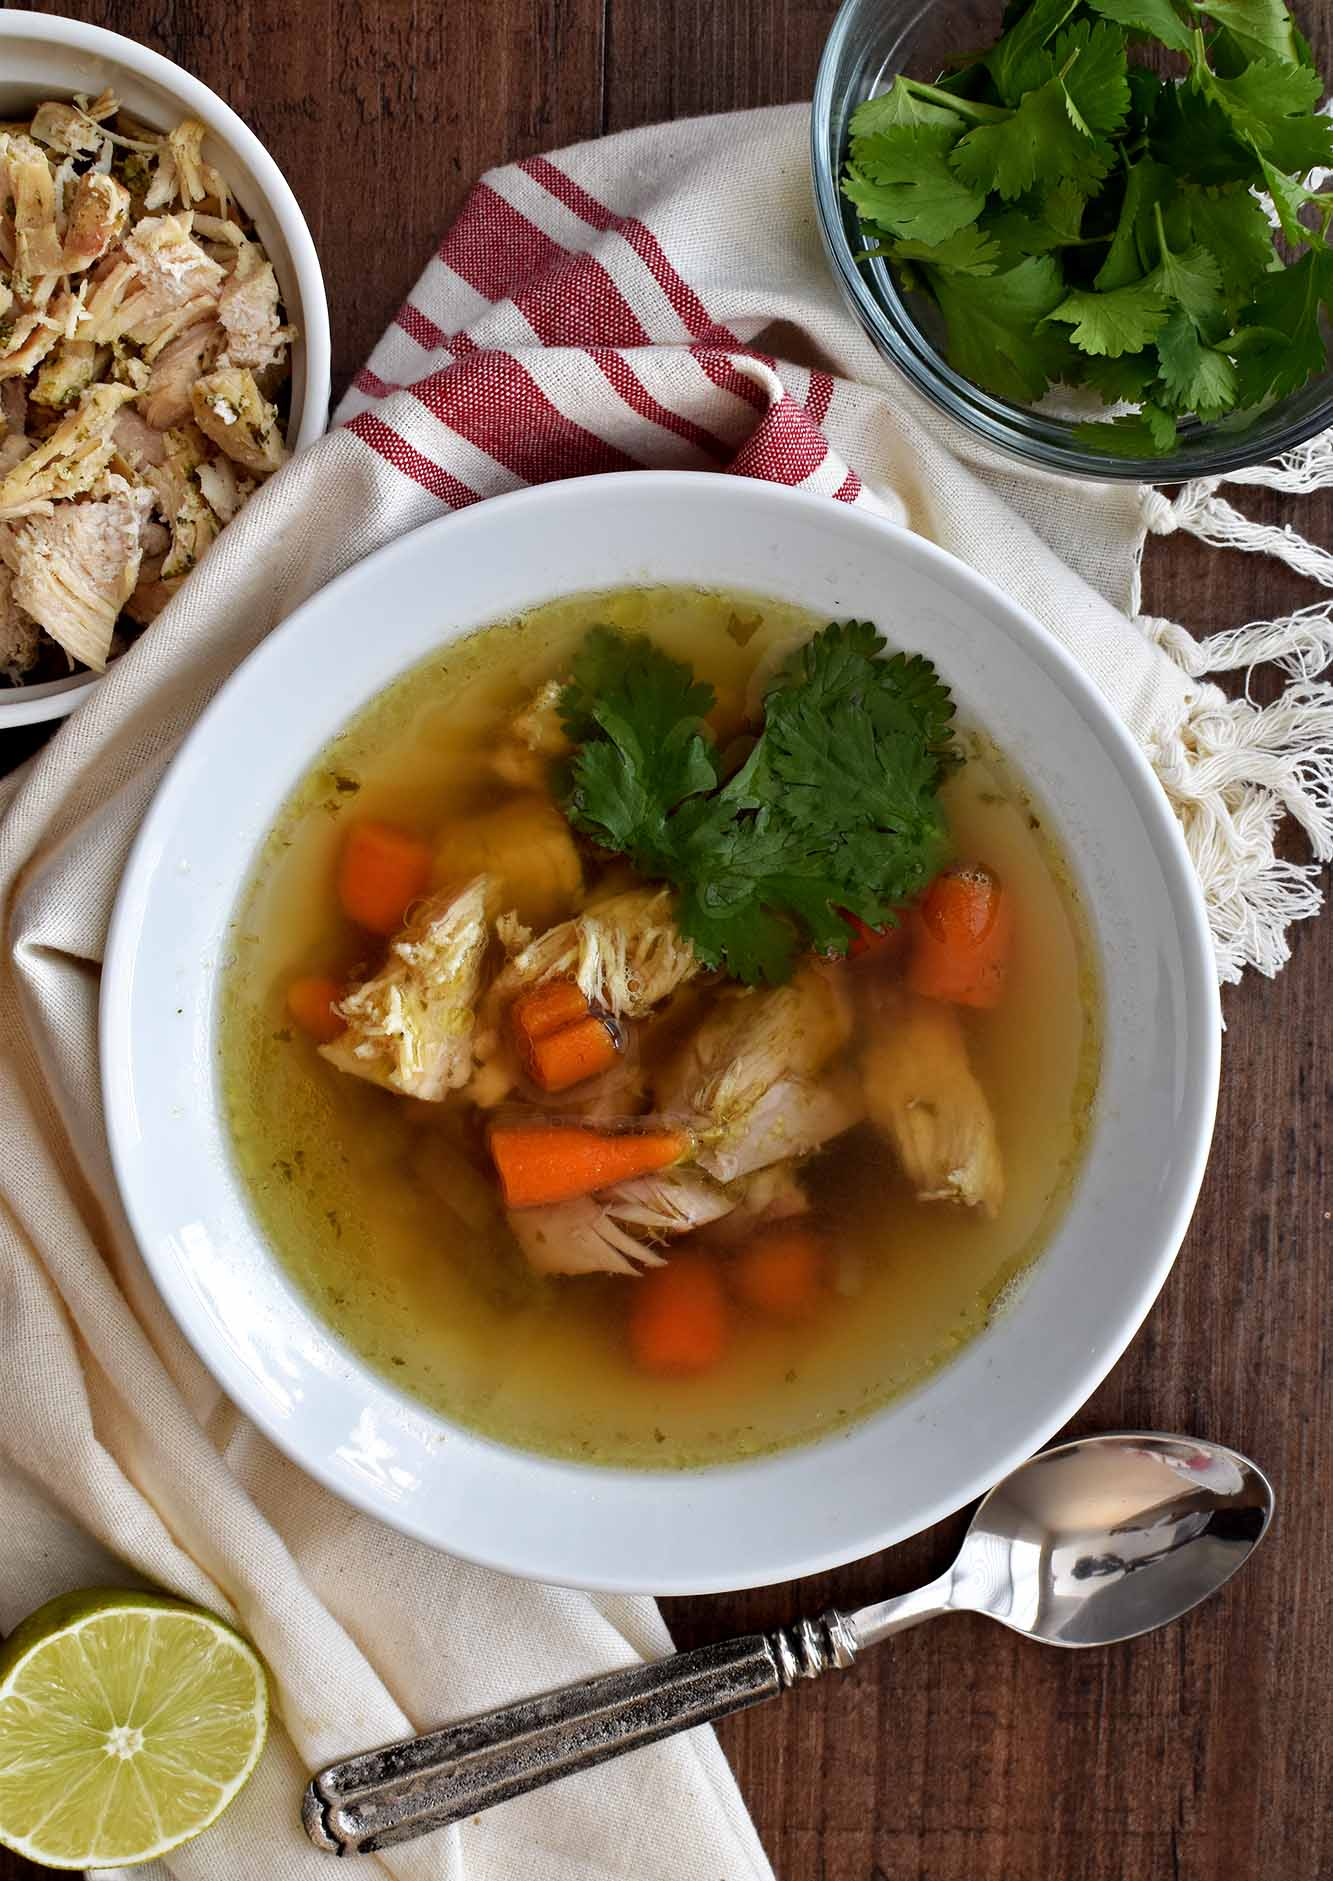 Chicken Cilantro Detox Soup - Pepper Delight #pepperdelightblog #recipe #soup #detox #chicken #wintersoup #healthy #easysoup #cleansingsoup # #leftovers #chickencilantrosoup